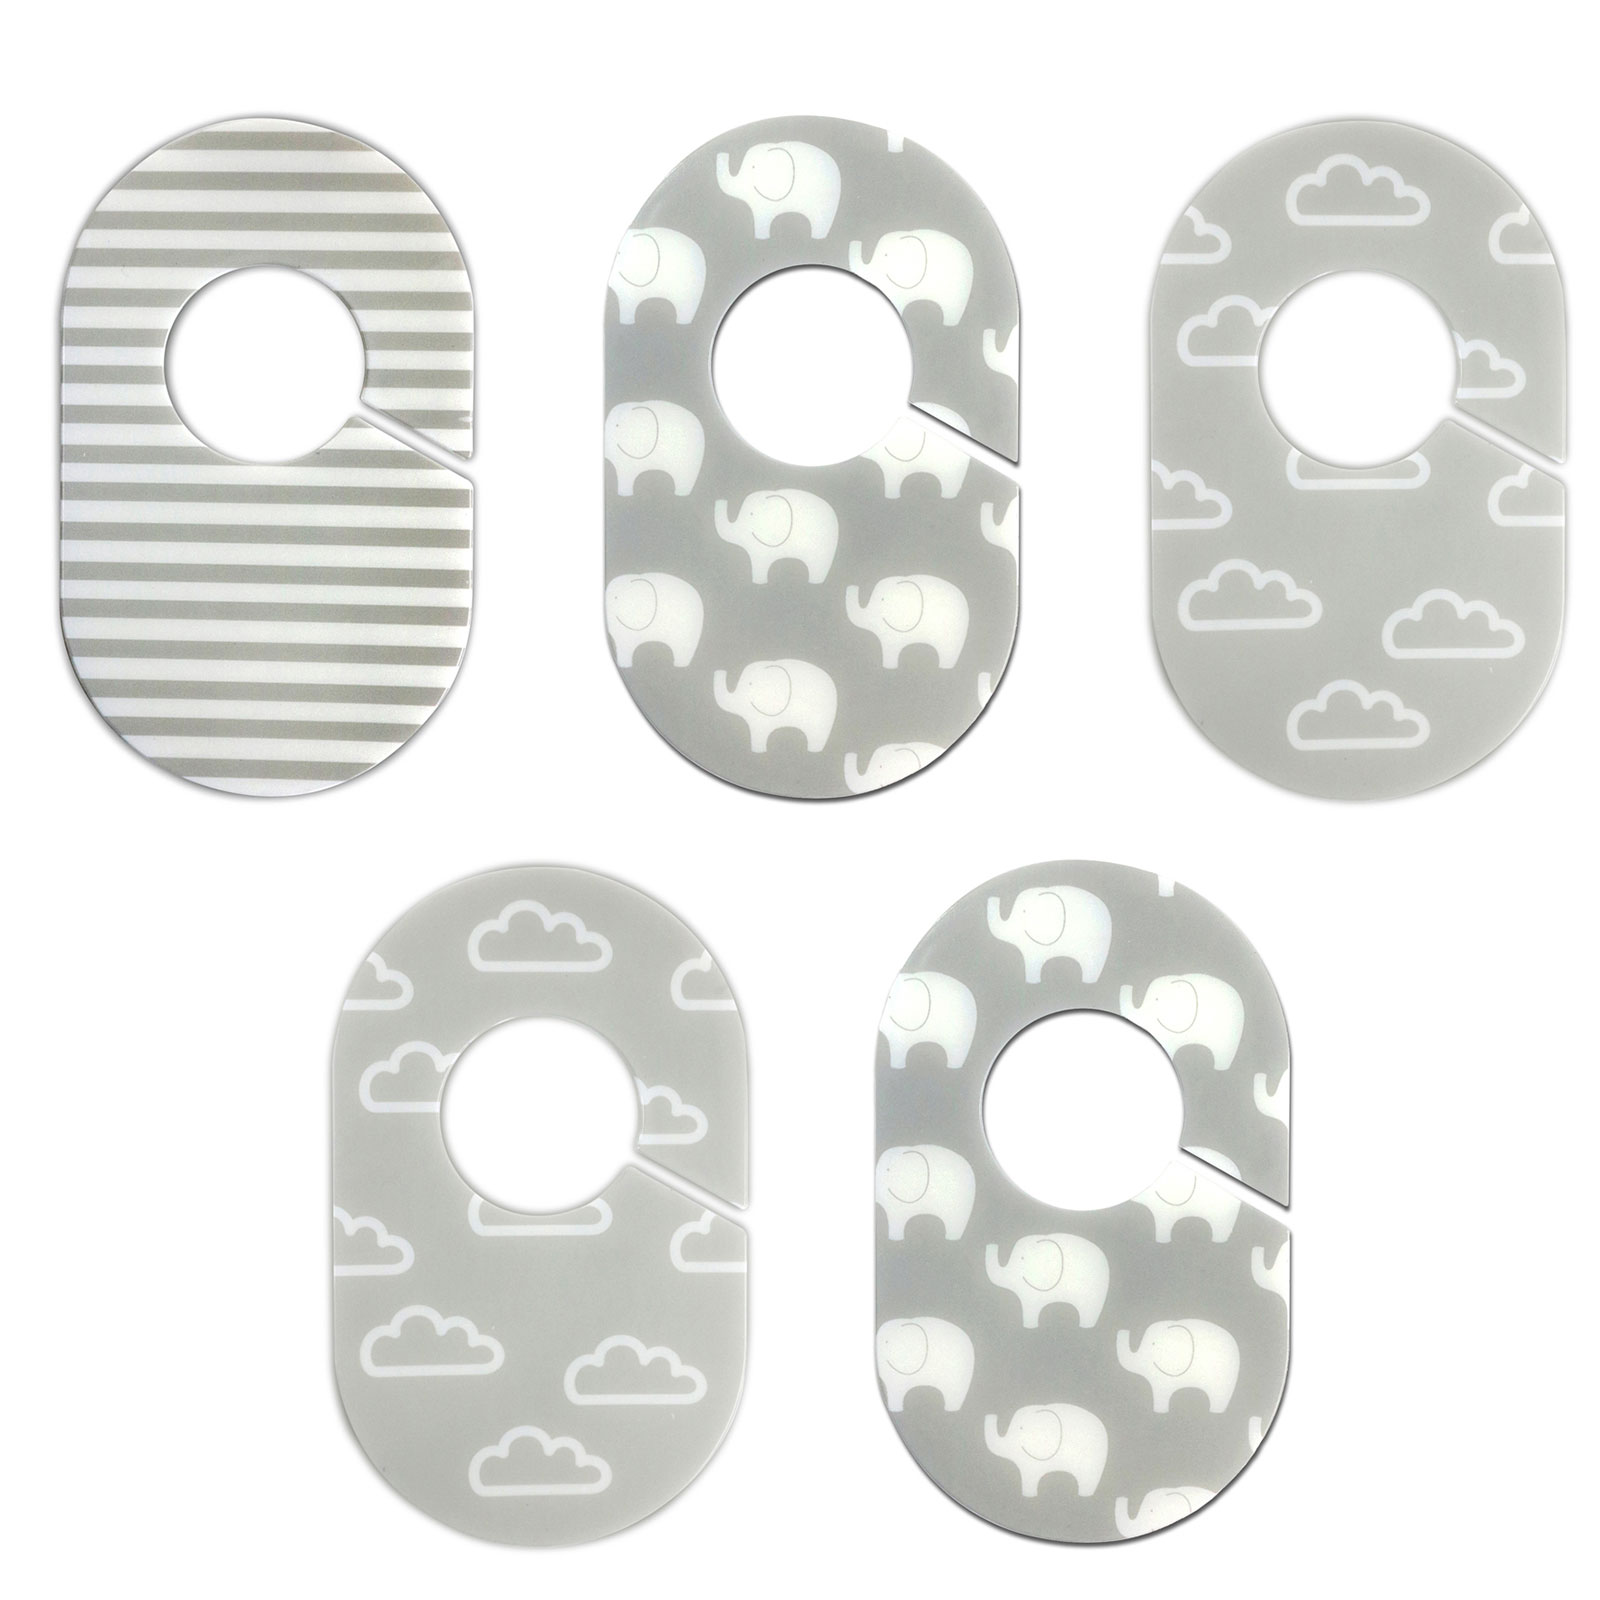 Little Haven Nursery Closet Organizers Dividers   Gray And White Elephant  And Cloud Designs   Set